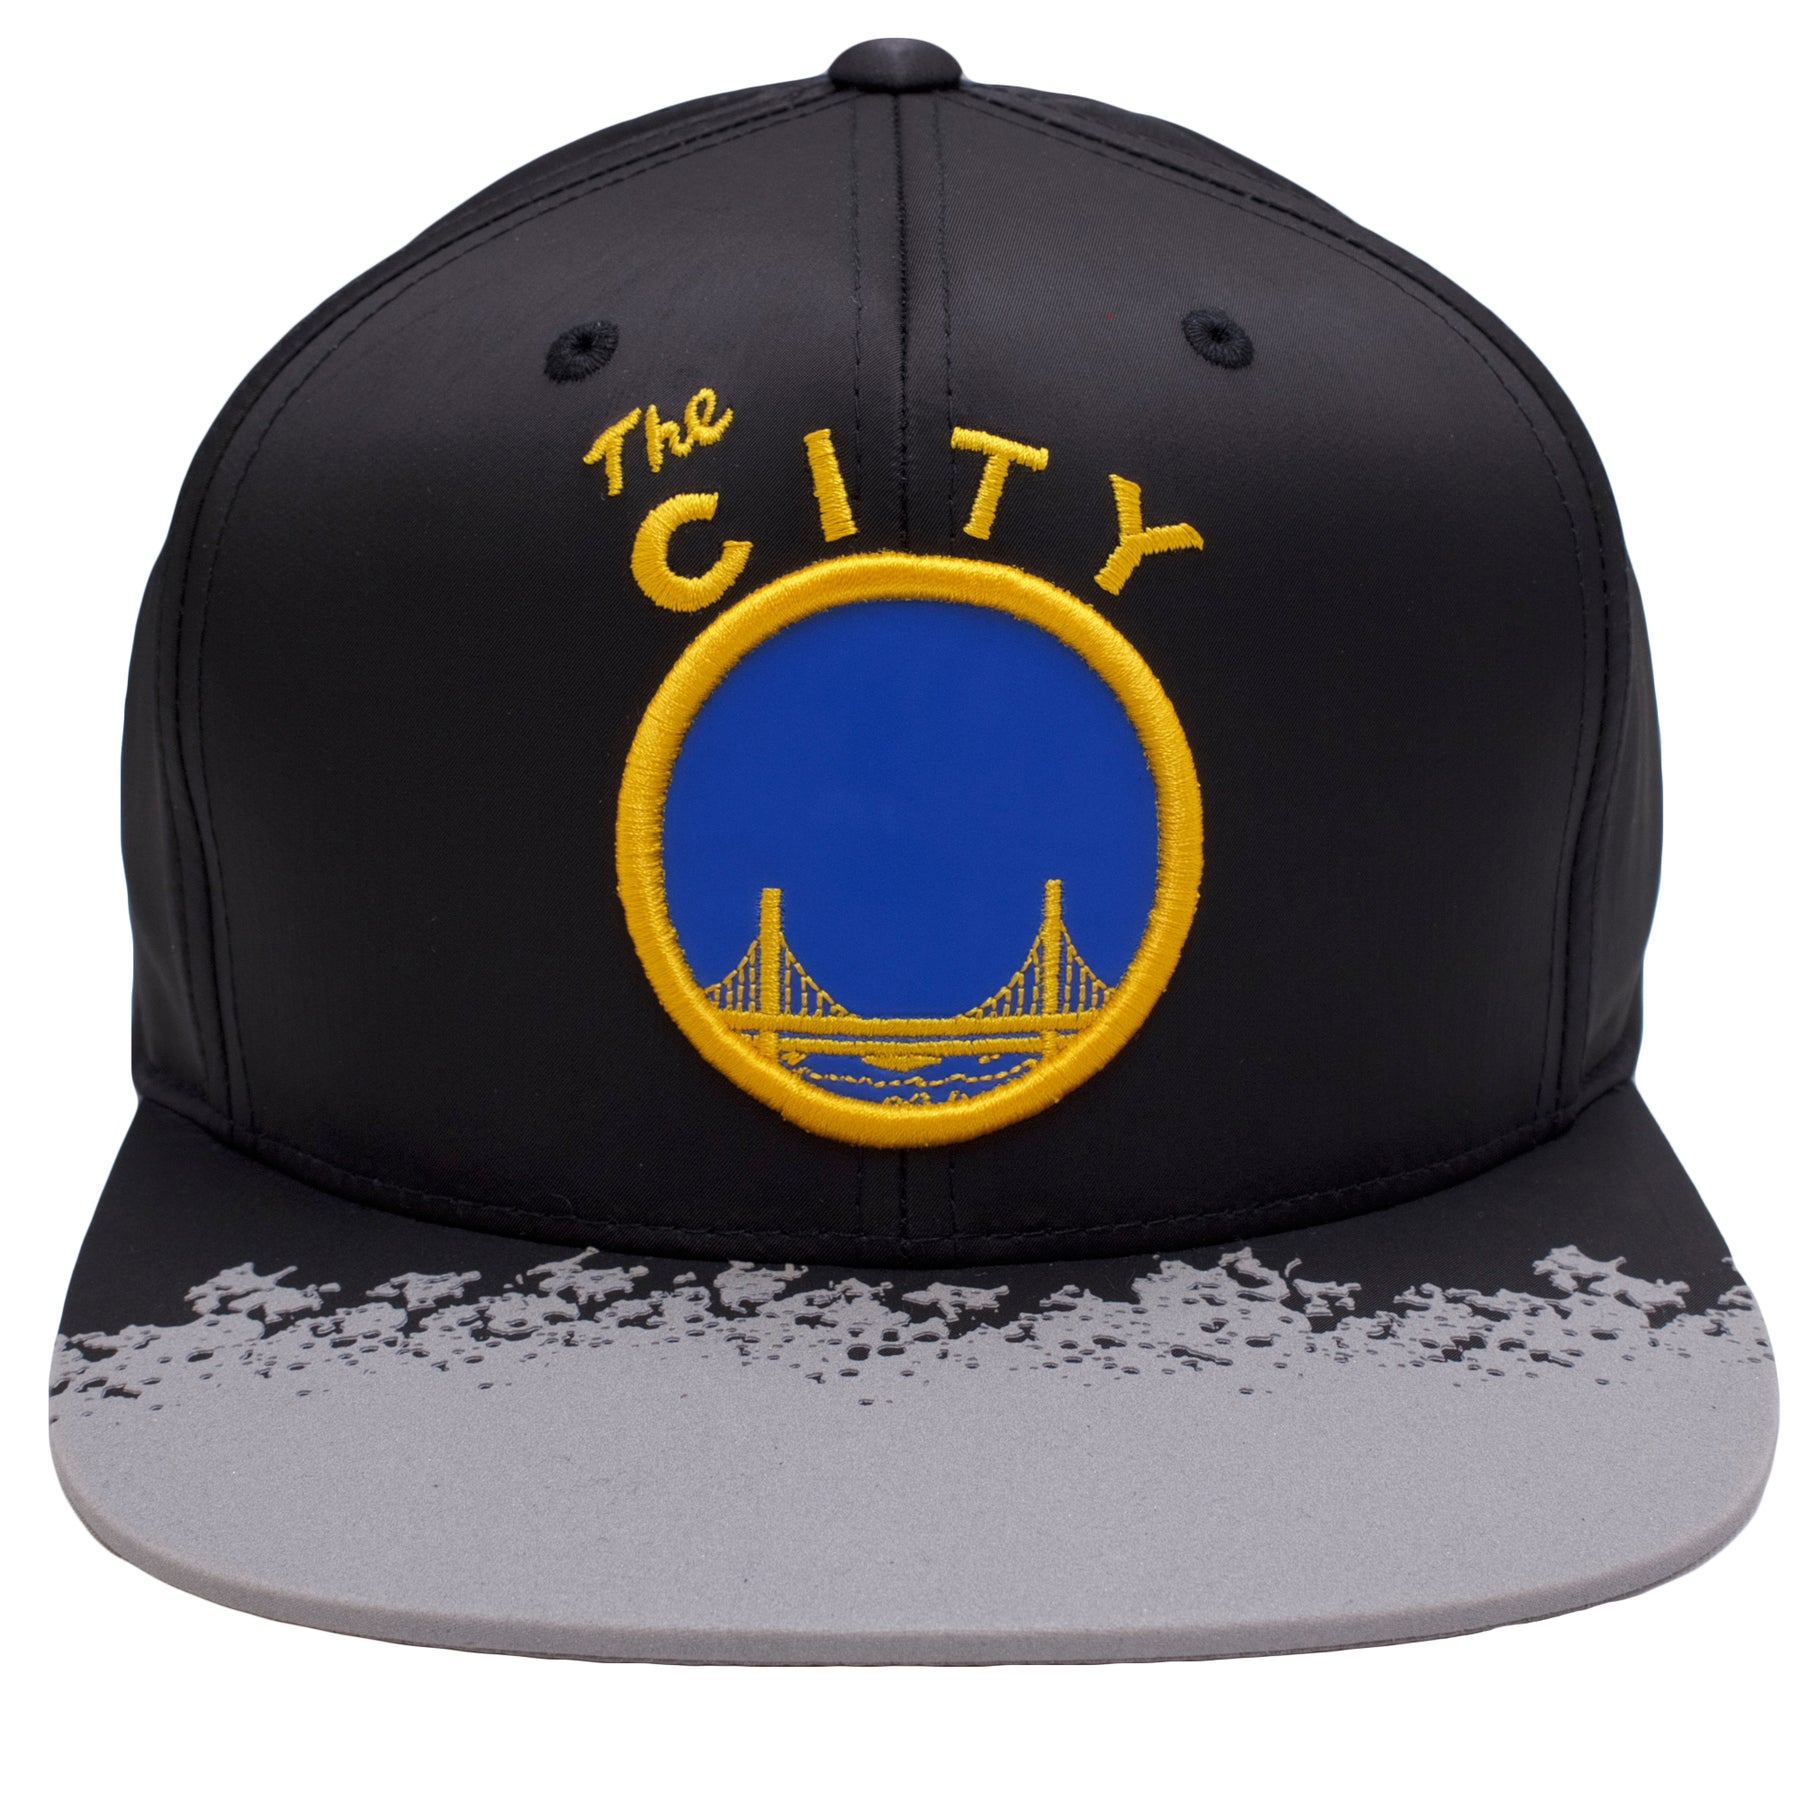 on the front of the golden state warriors reflective lava snapback hat 6560739b3e7